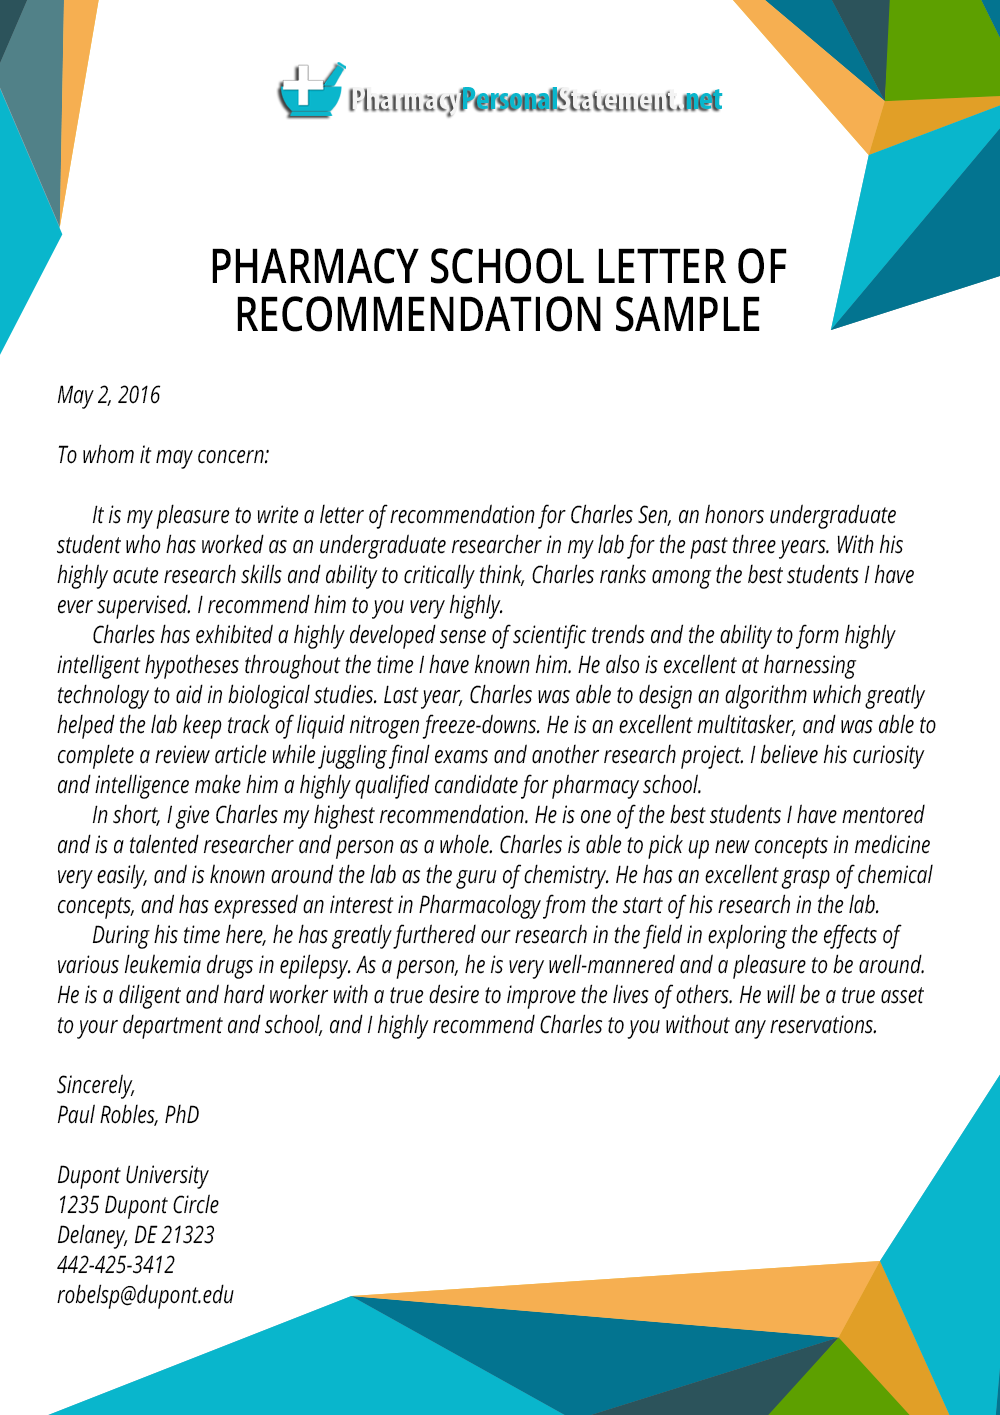 Pin by pharmacy application samples on pharmacy school letter of pin by pharmacy application samples on pharmacy school letter of recommendation pinterest pharmacy school writing services and school fandeluxe